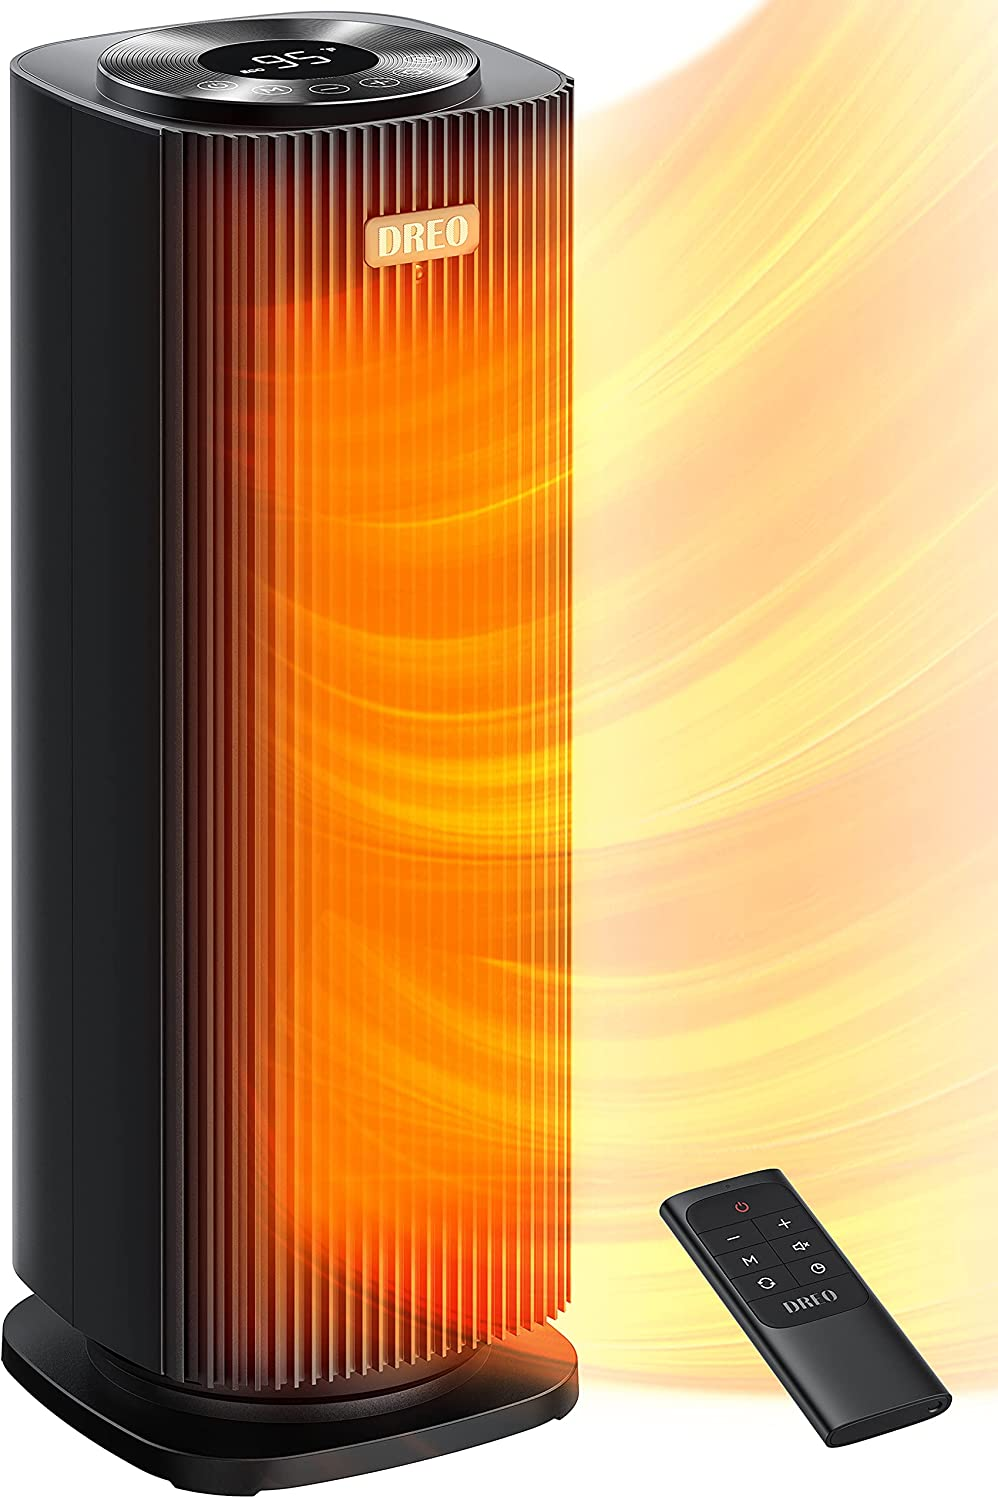 Dreo Space Heaters for Indoor Use, Quiet&Fast Portable Heater with Tip-Over and Overheat Protection, Remote, Oscillating,12H Timer, LED Display with Touch Control, Electric Heater for Office Use